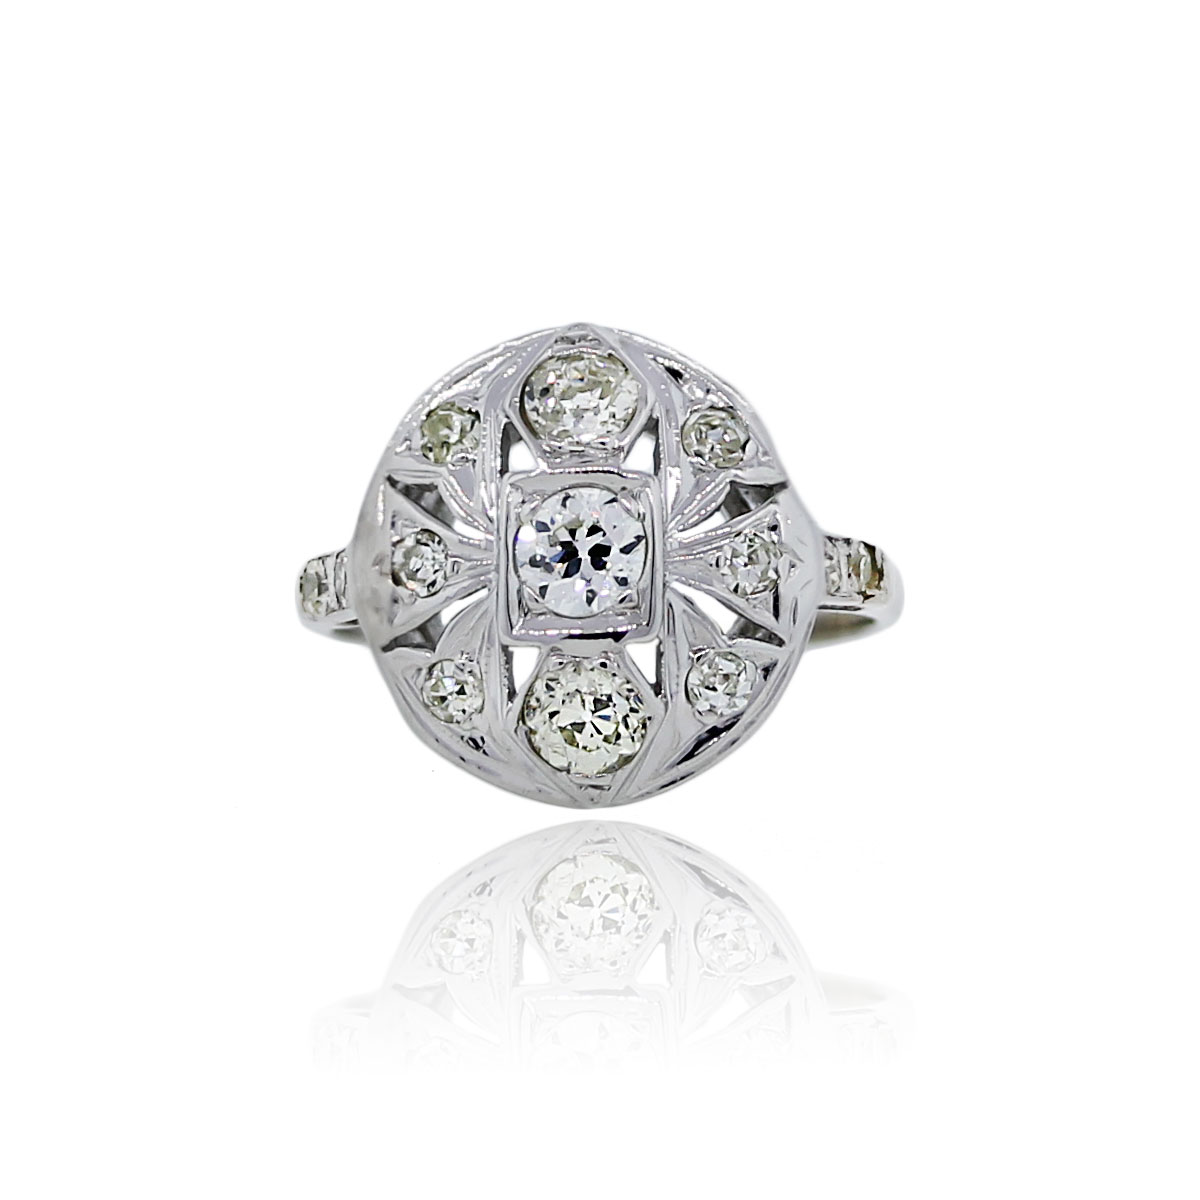 You are viewing this 14K White Gold Round Brilliant Diamond Ladies Vintage Ring!